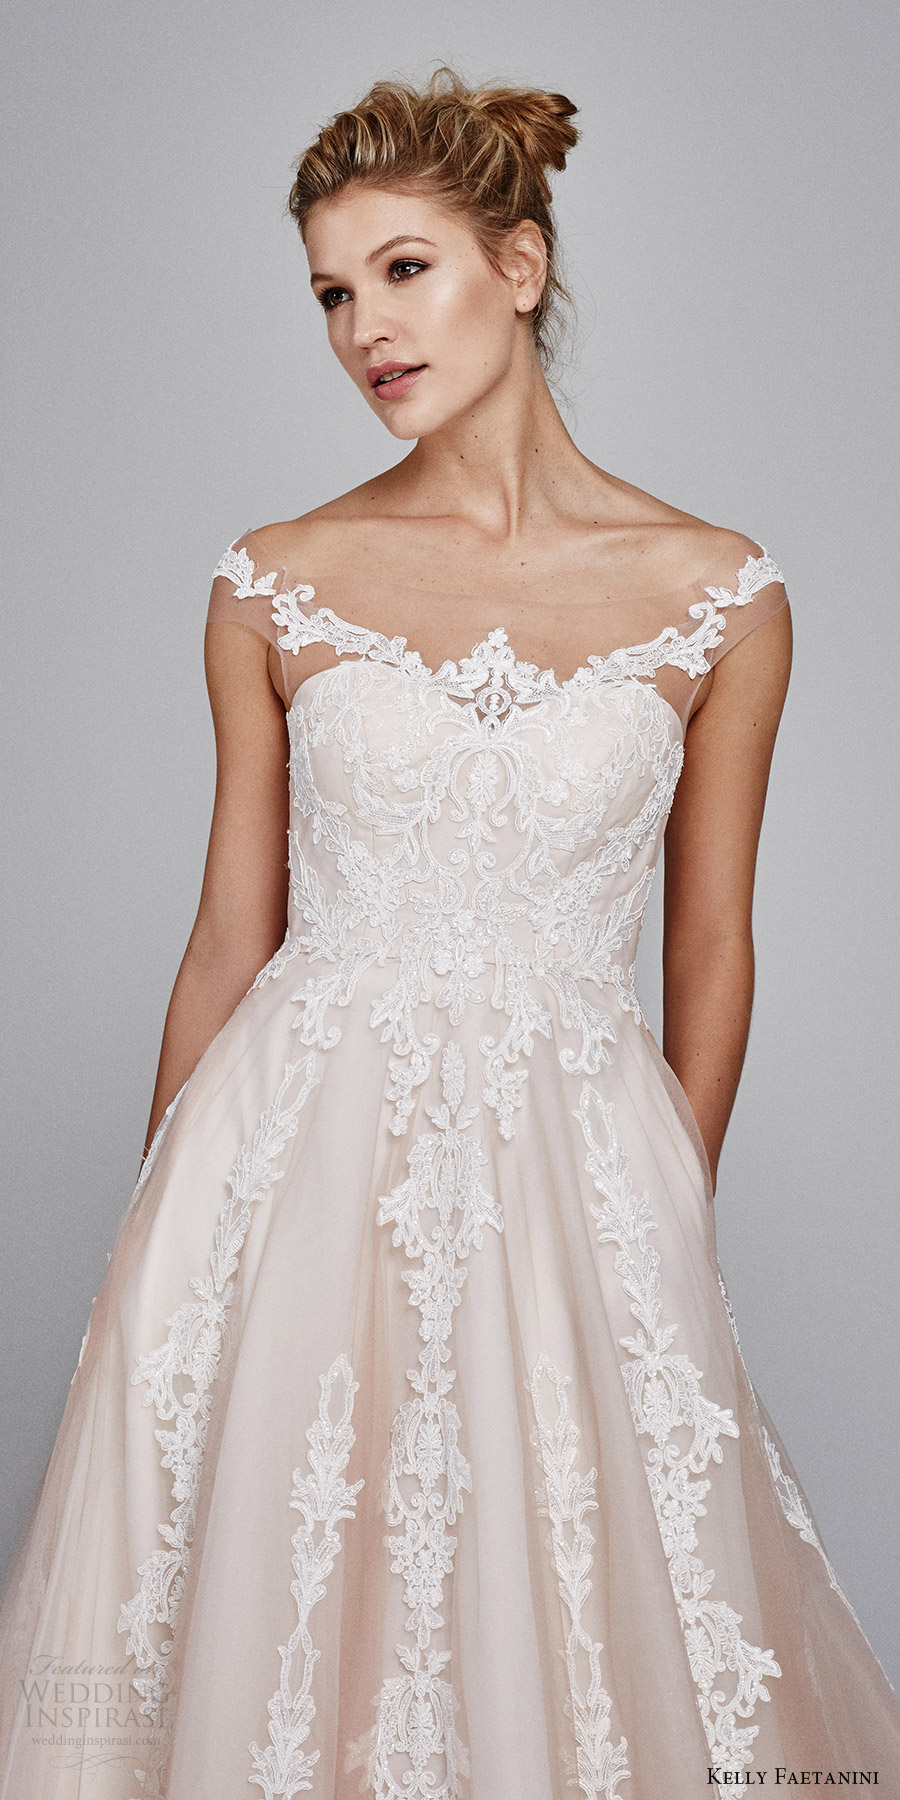 kelly faetanini bridal fall 2017 illusion off shoulder sweetheart blush alencon lace ball gown wedding dress (suri) zv